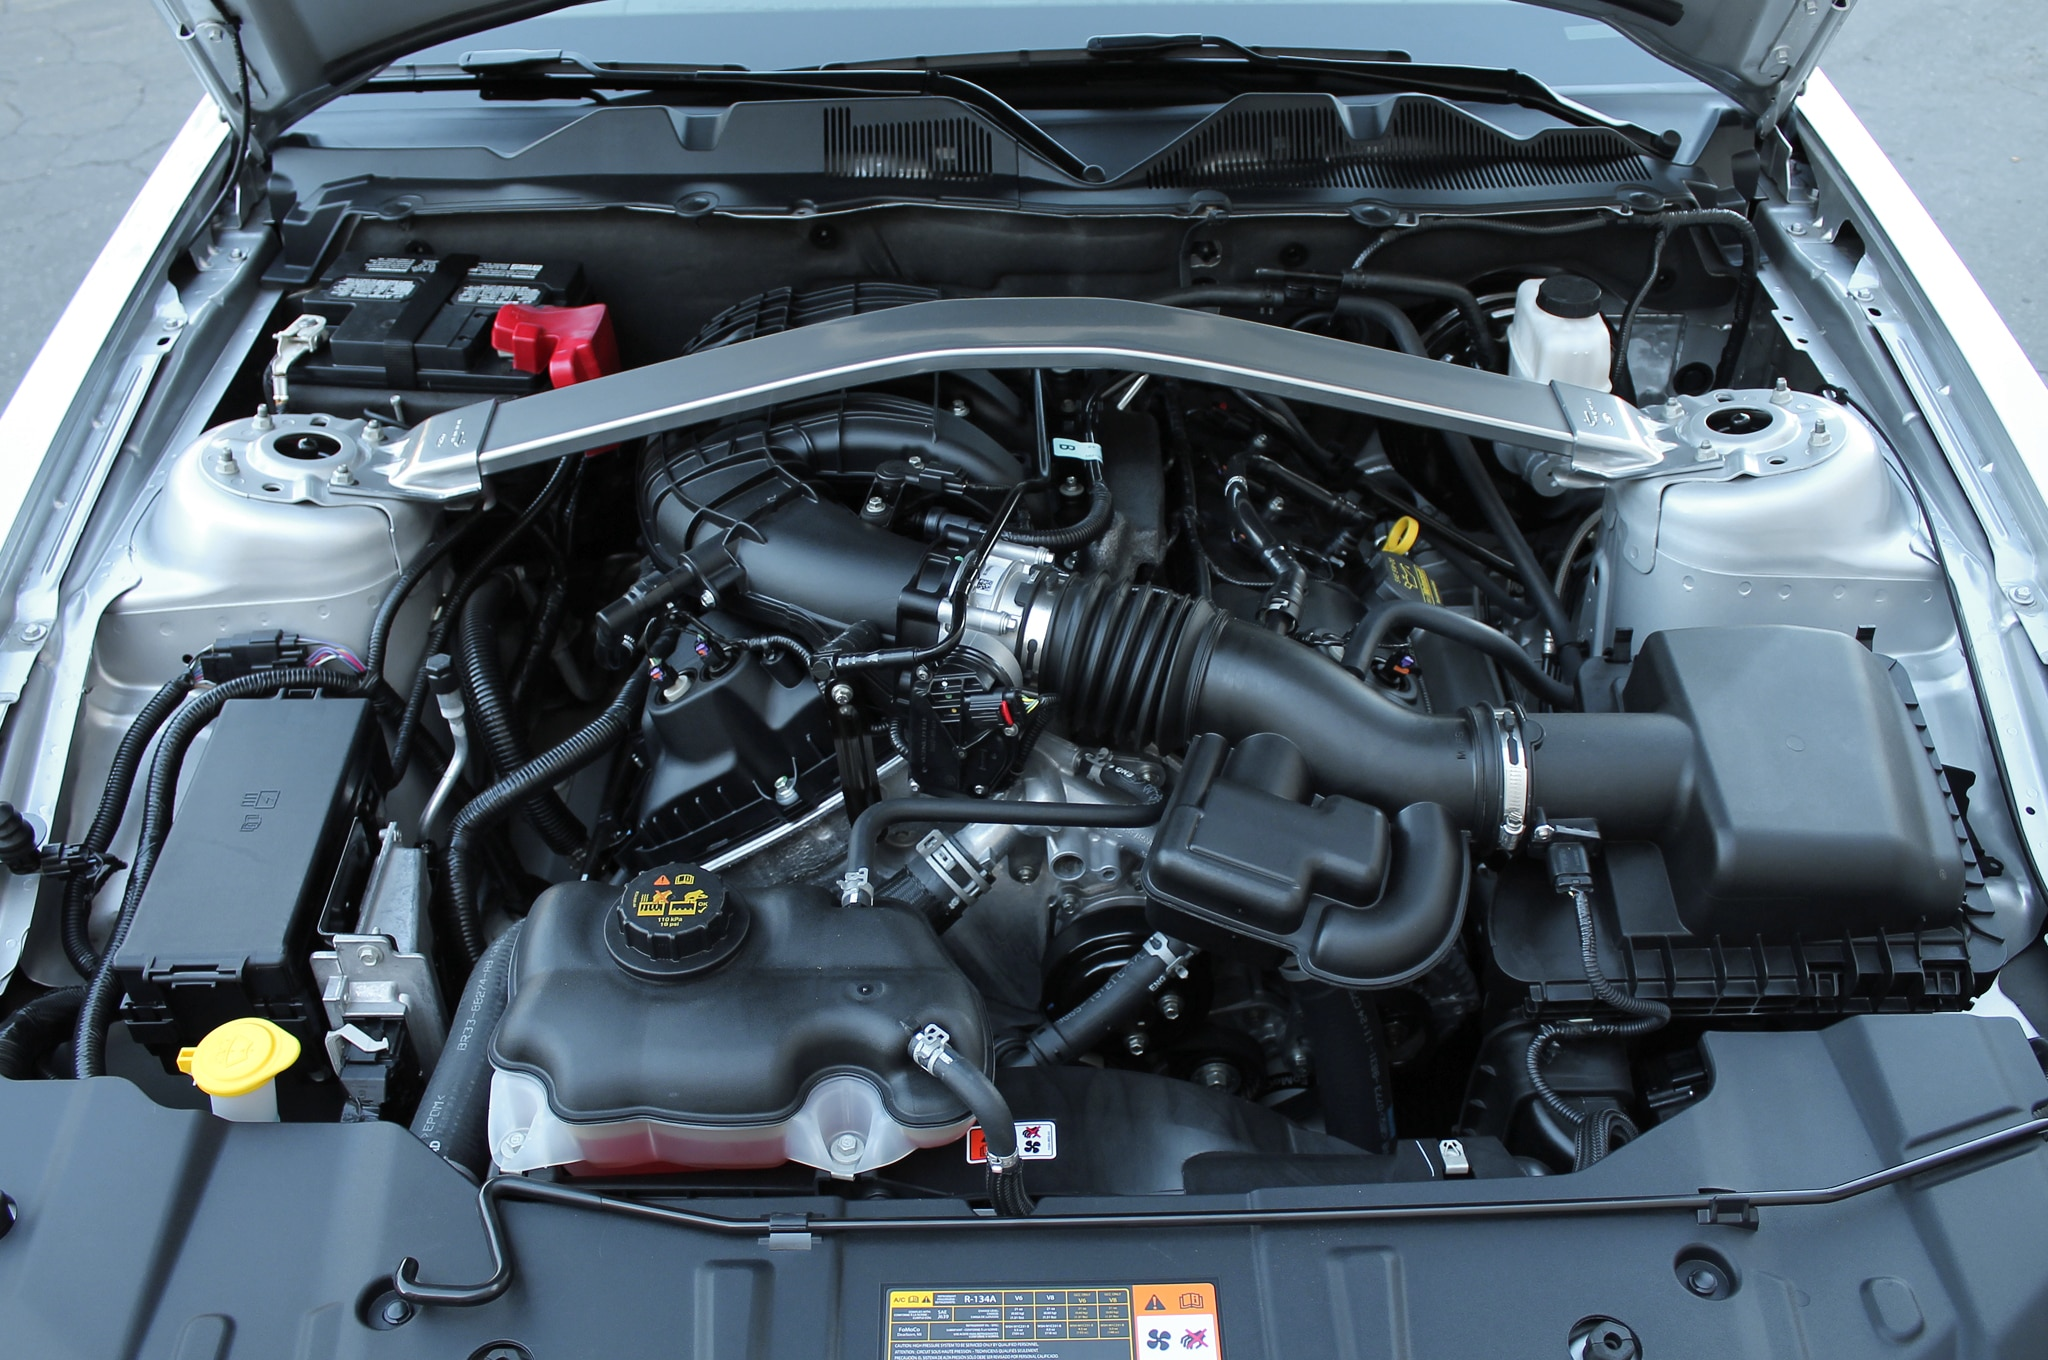 2014 ford mustang gt adds supercharger, yellow paint for sema